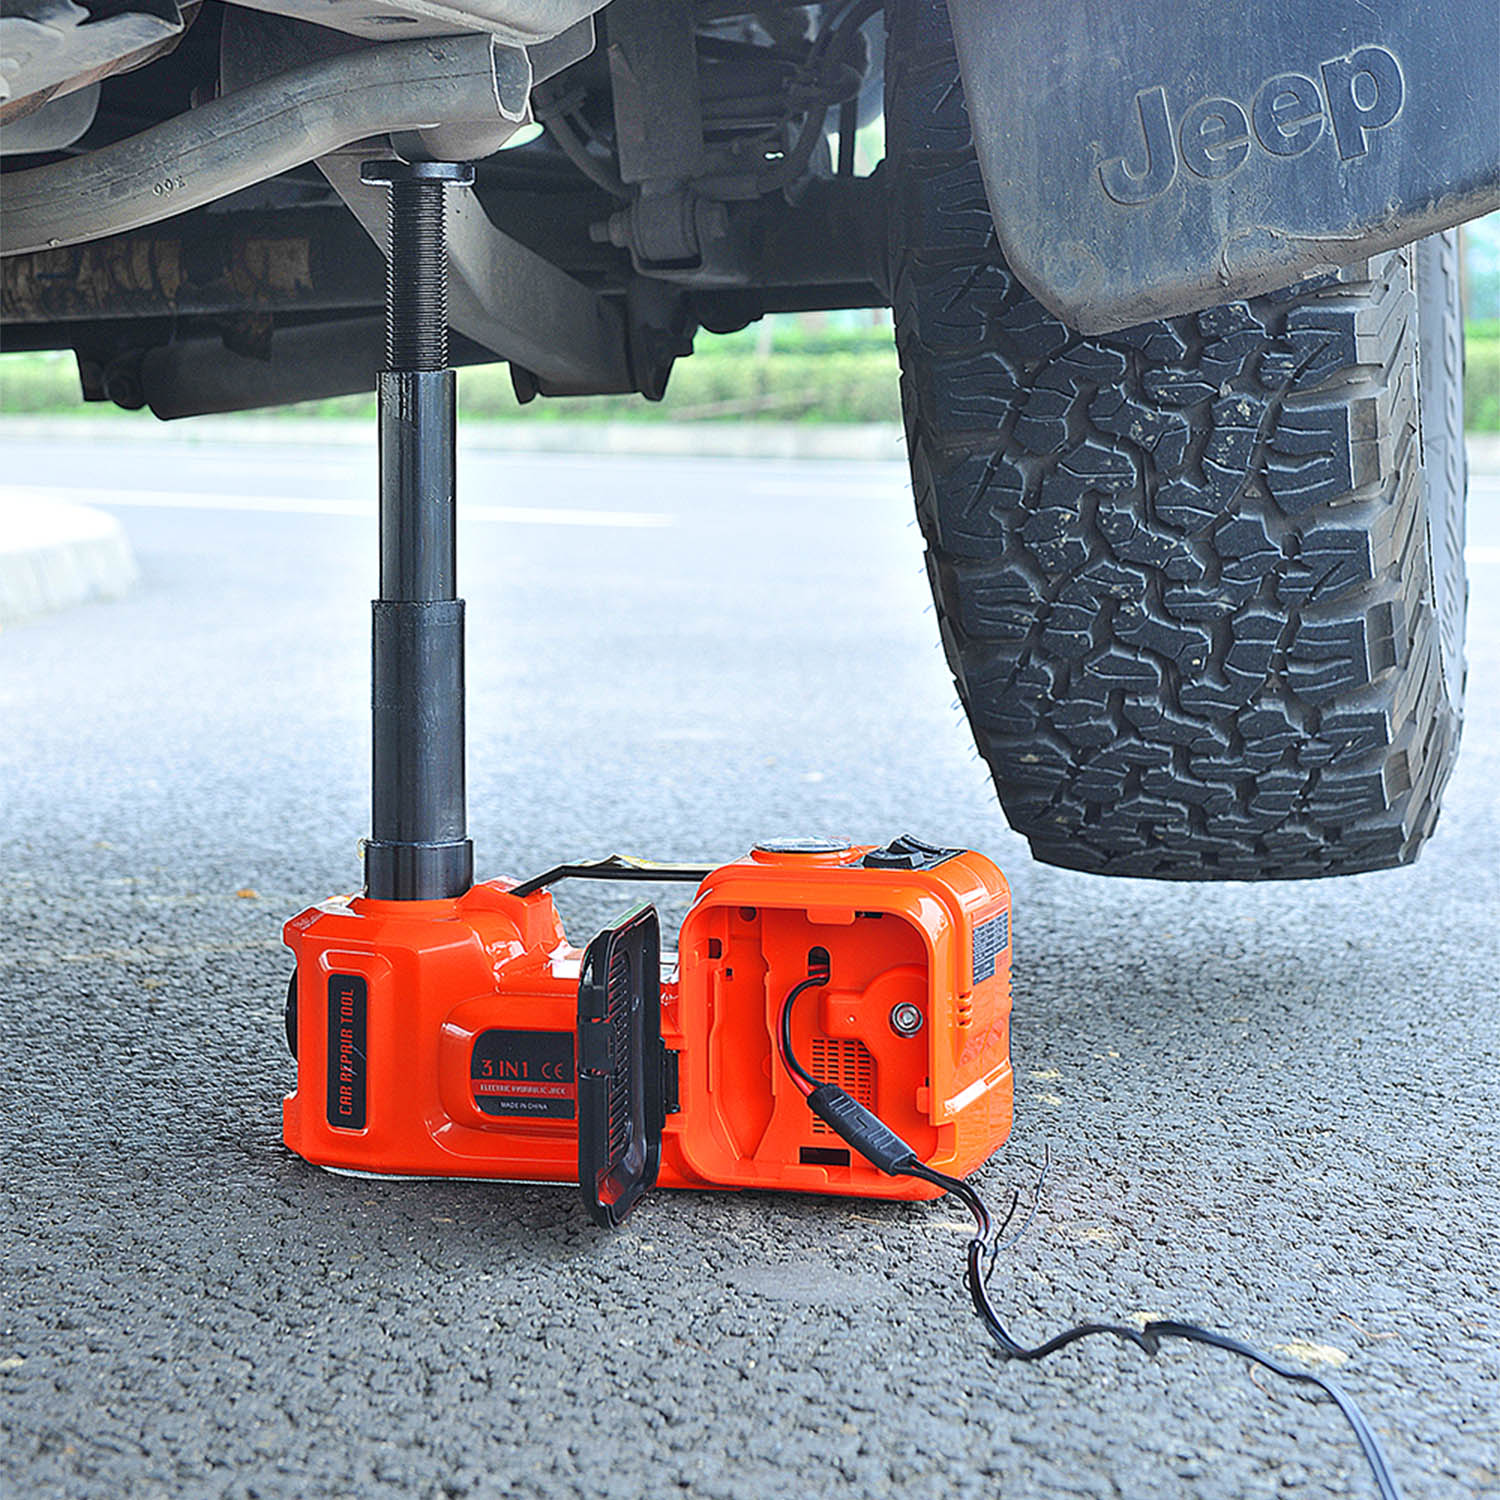 12V 5Ton Car Electric Hydraulic Floor Jack, Tire Inflator Pump and LED Flashlight 3 in 1 Set With Safe Hammer QZ002